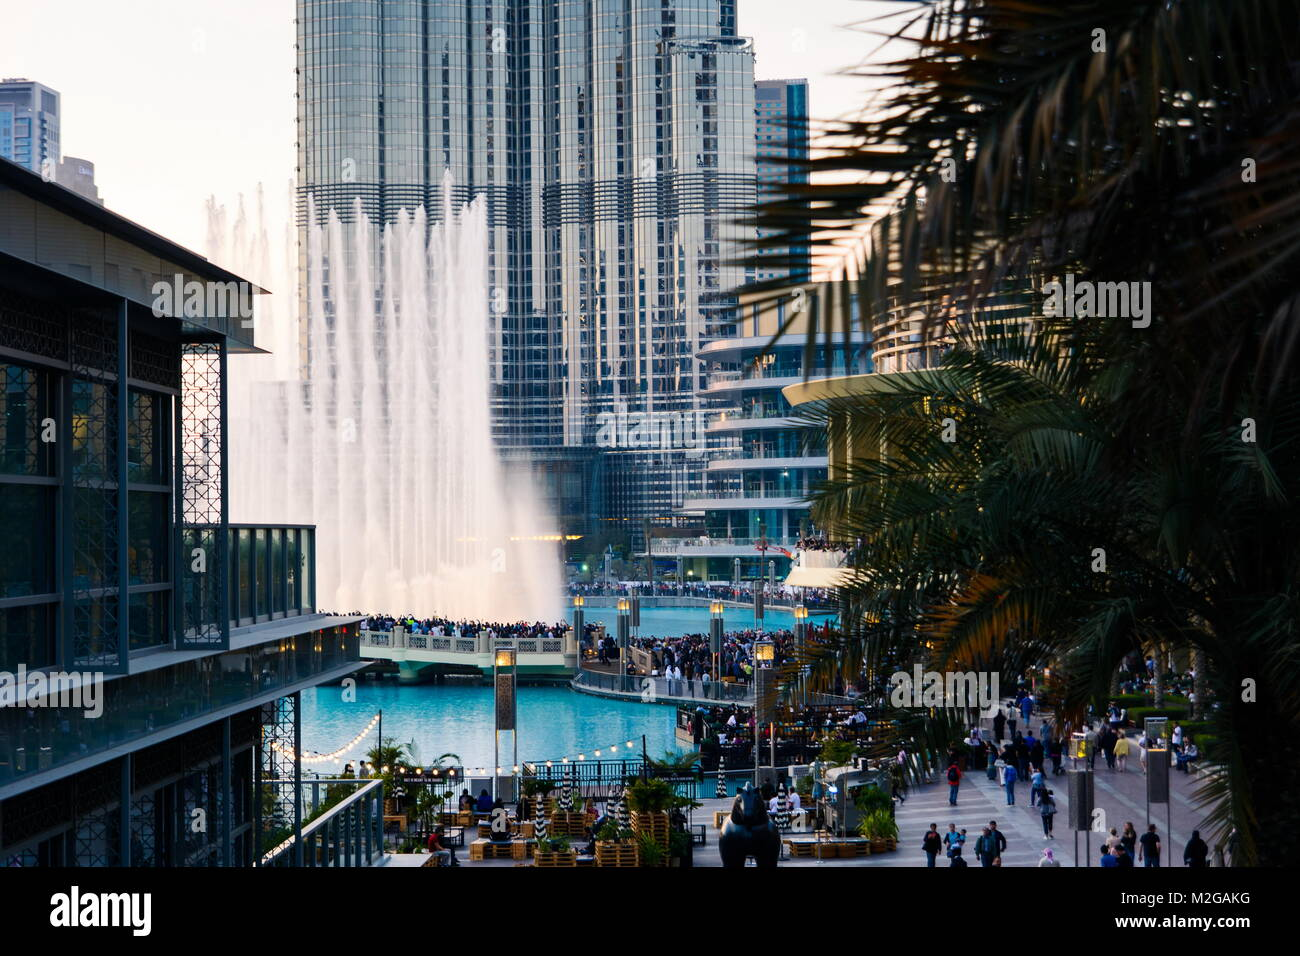 DUBAI, UNITED ARAB EMIRATES - FEBRUARY 5, 2018: Crowd gathers around the Dubai mall fountain to see the water show - Stock Image